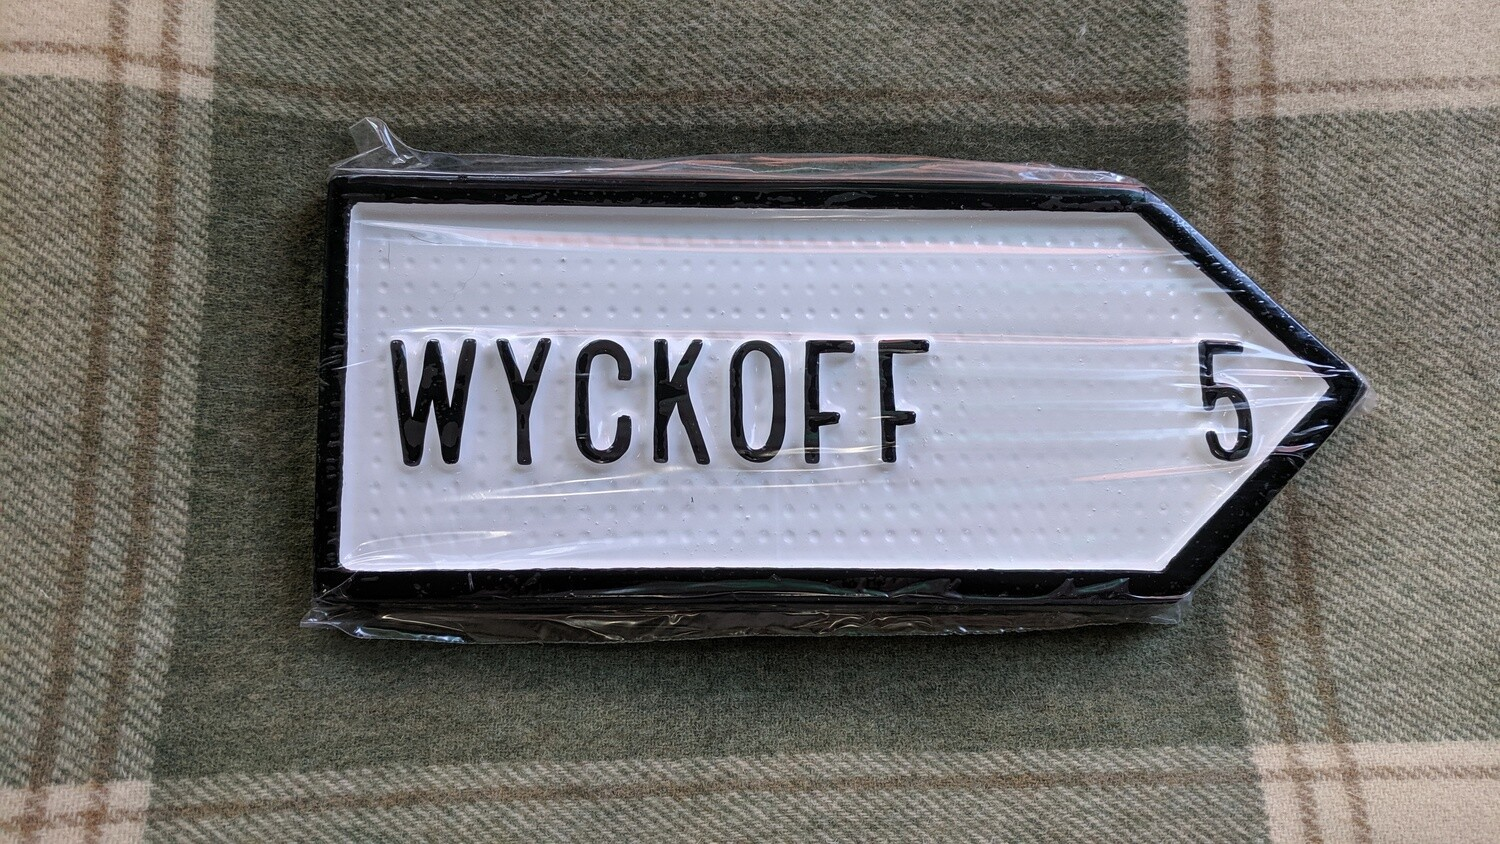 Irish Road Sign - Wyckoff